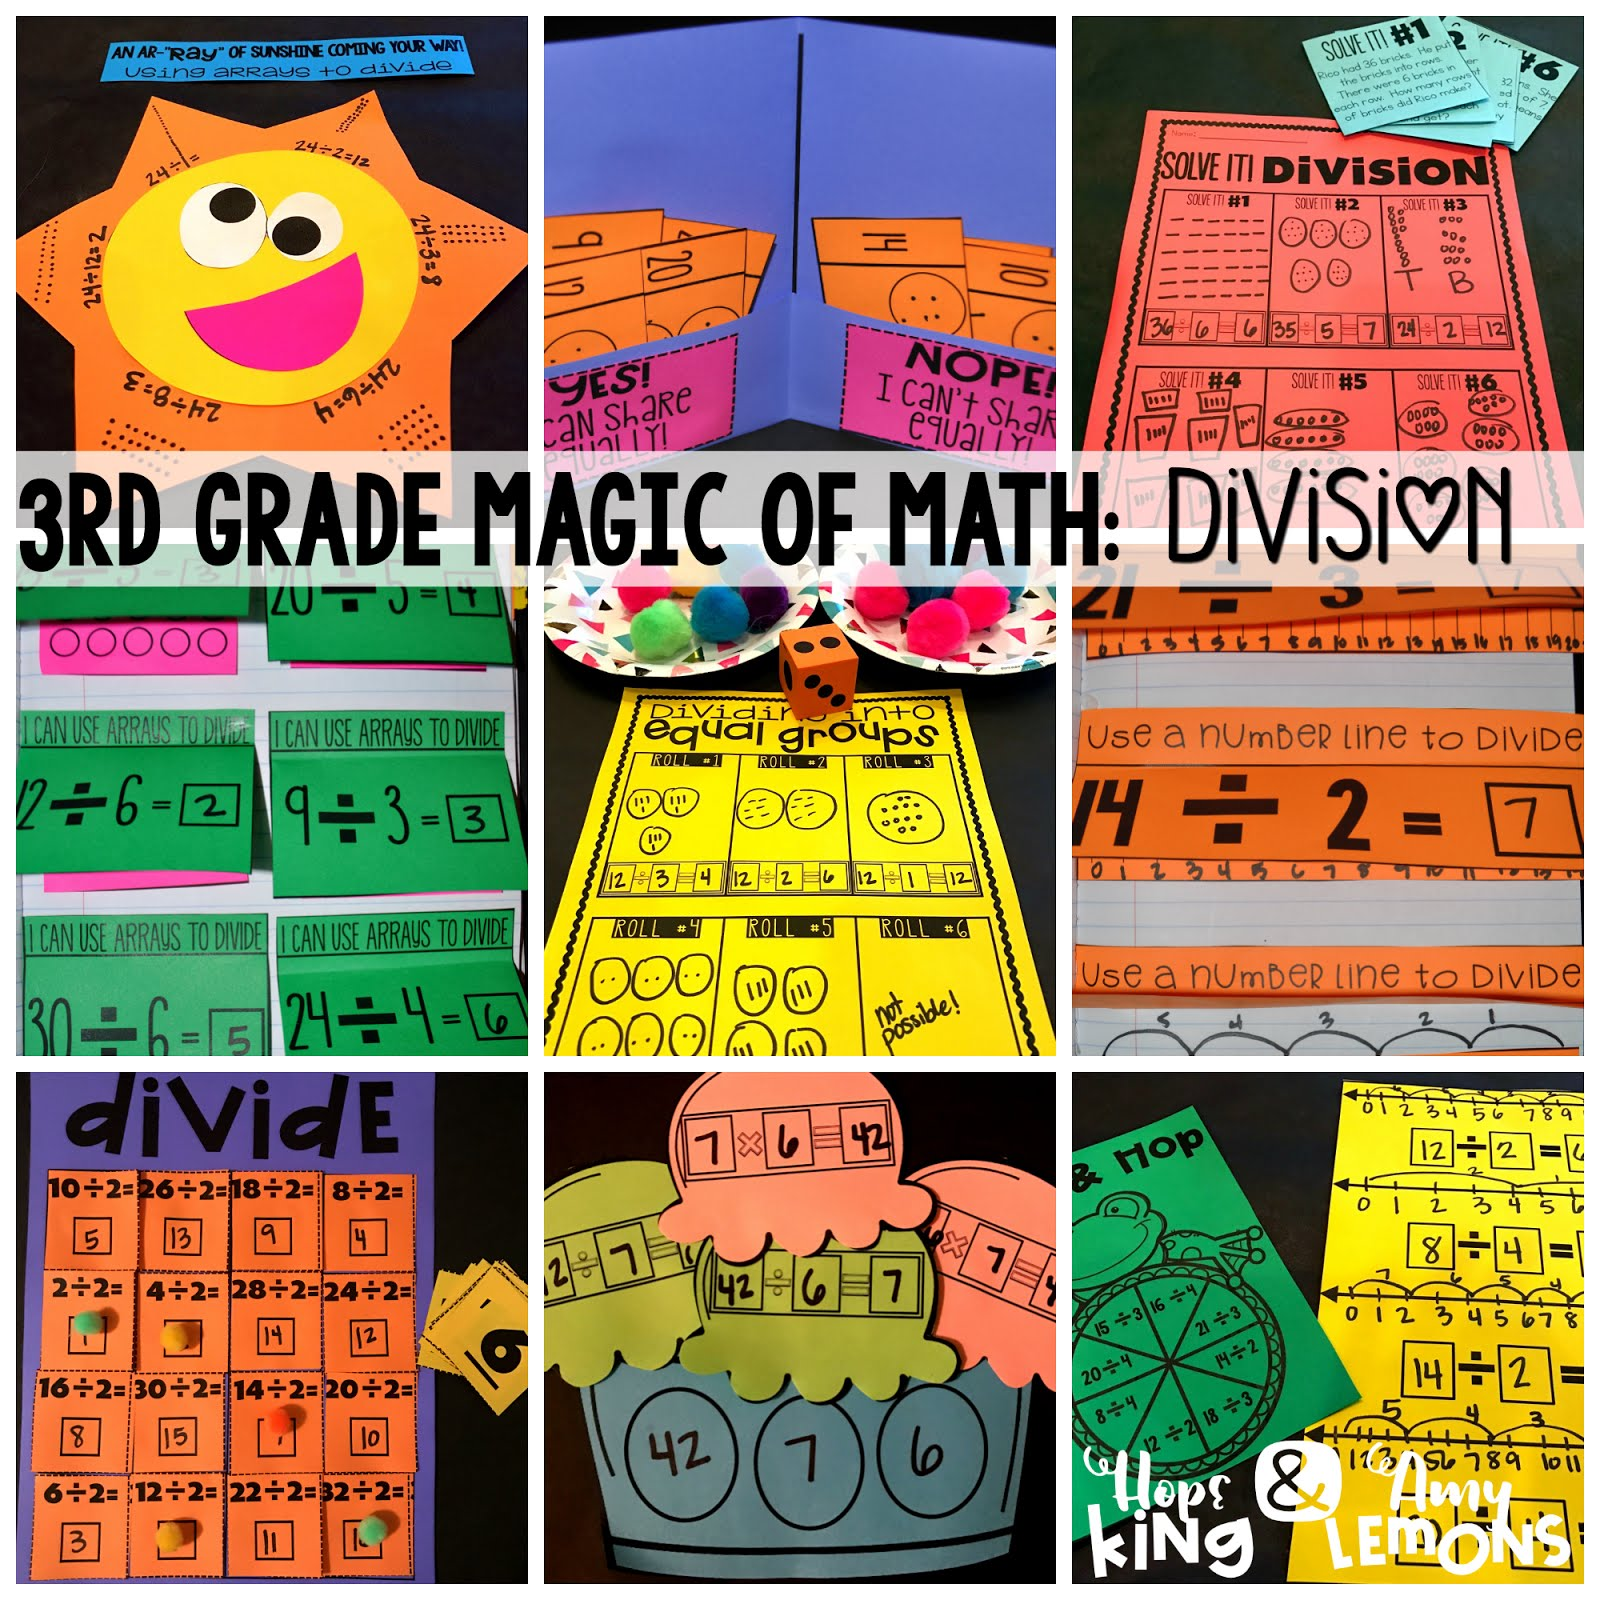 3rd Grade Division